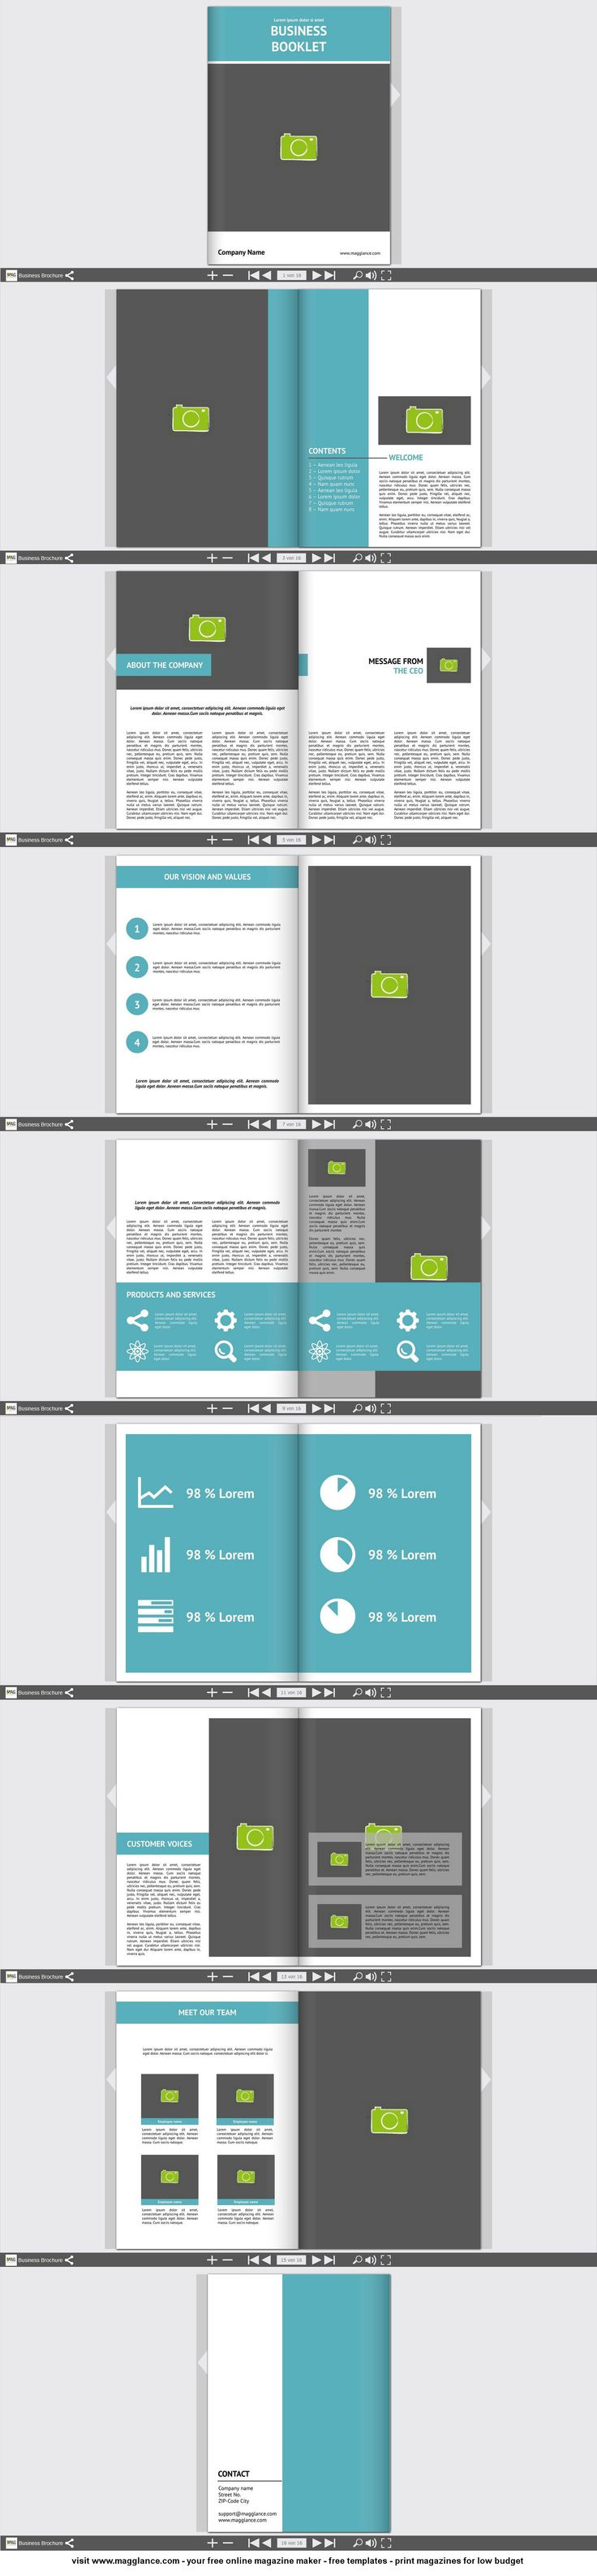 Best Brochure Maker Ideas On Pinterest Company Profile - Printable brochure templates